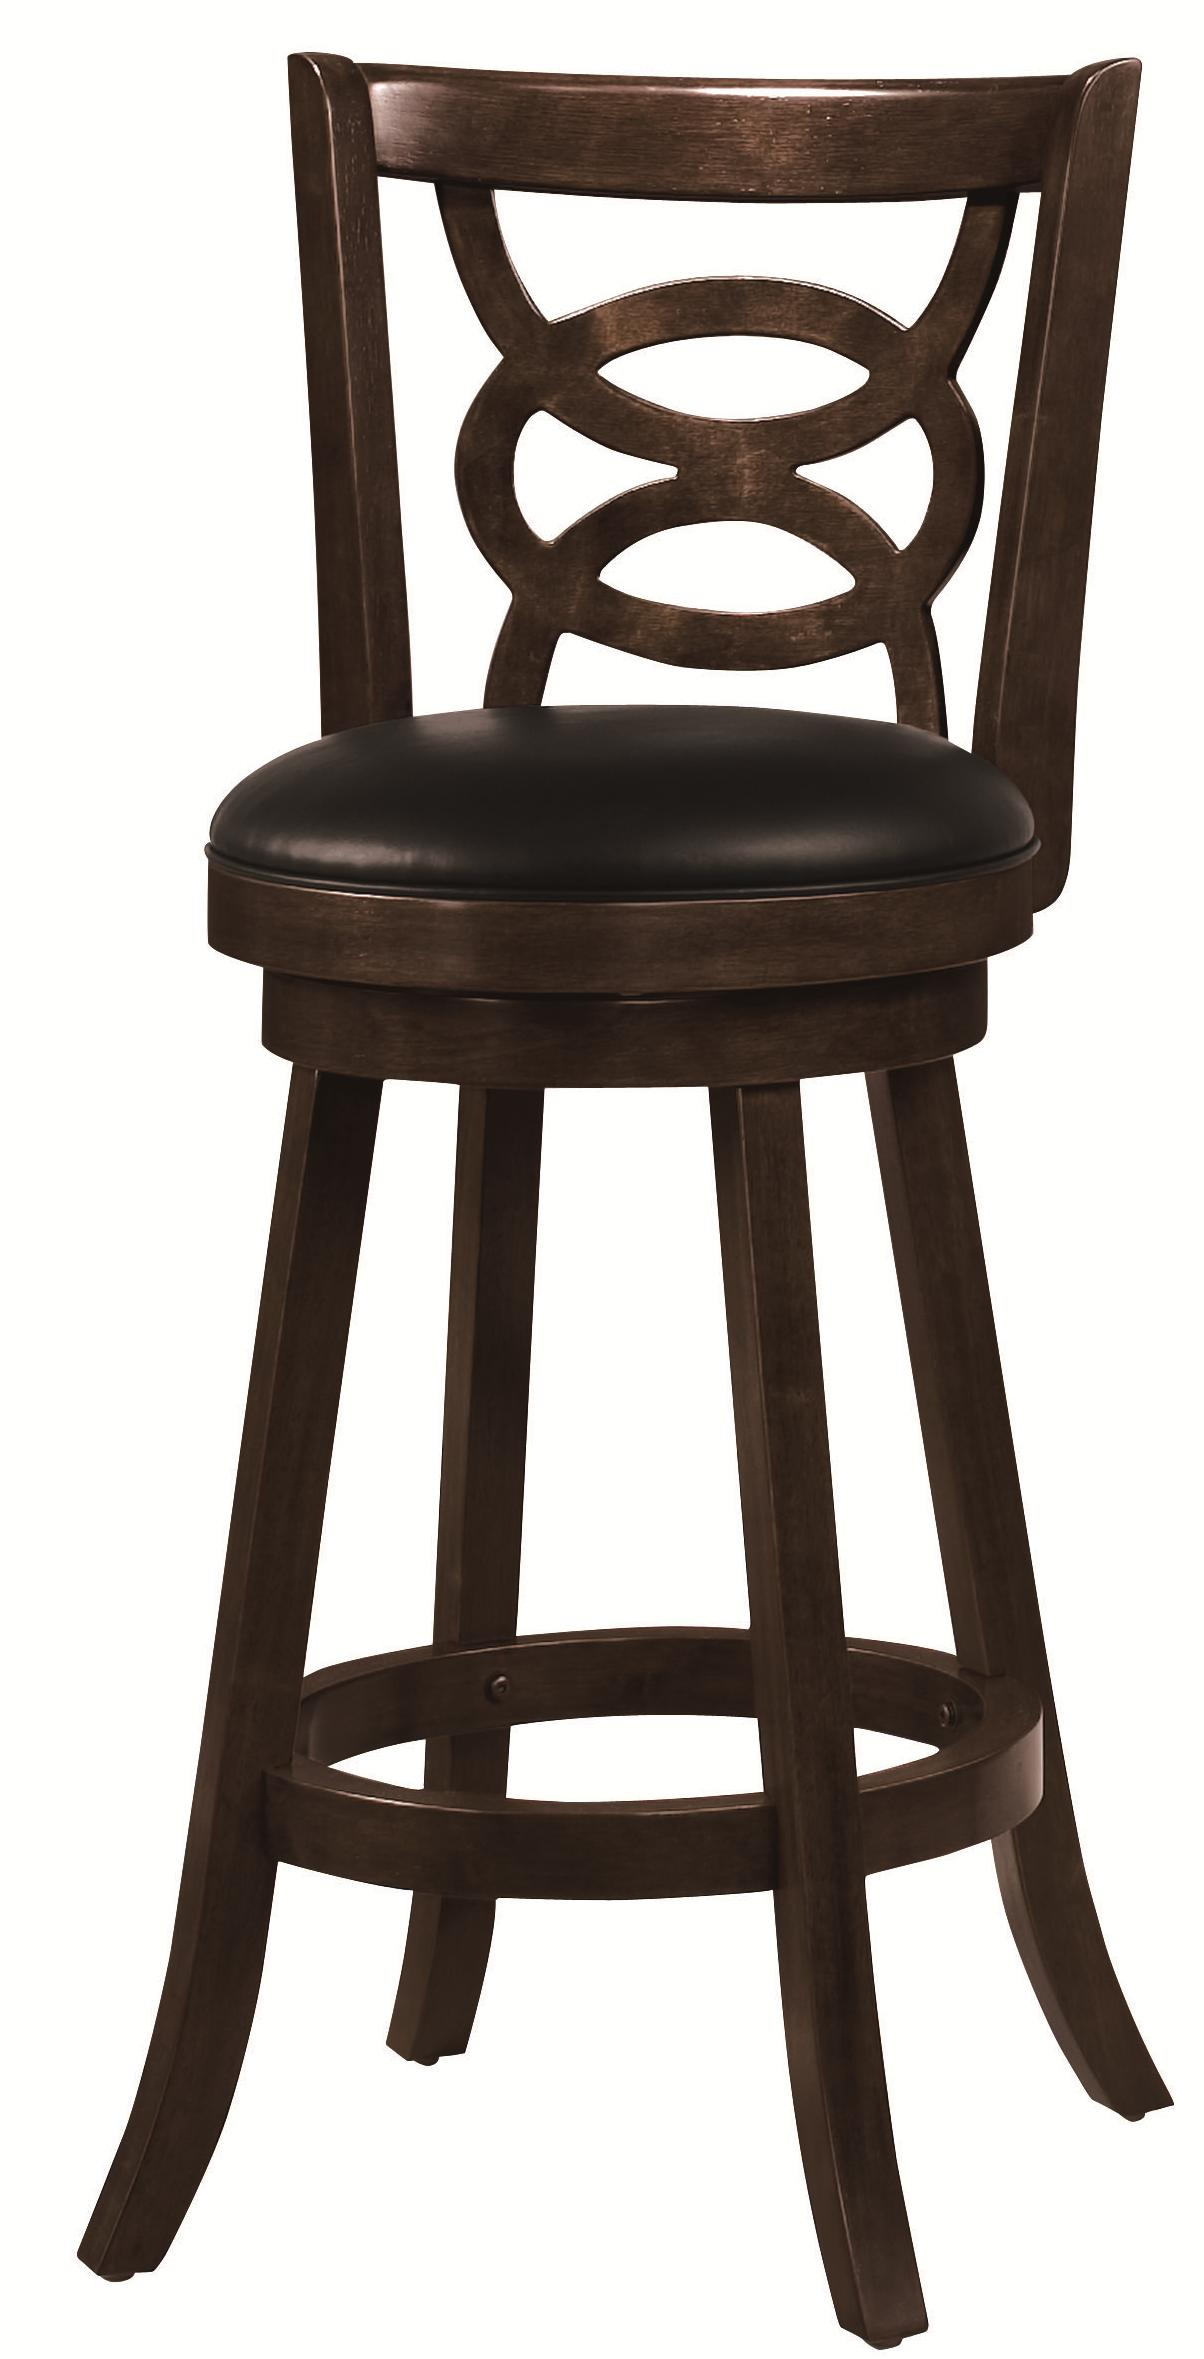 "Coaster Dining Chairs and Bar Stools 29"" Swivel Bar Stool with Upholstered Seat - Item Number: 101930"